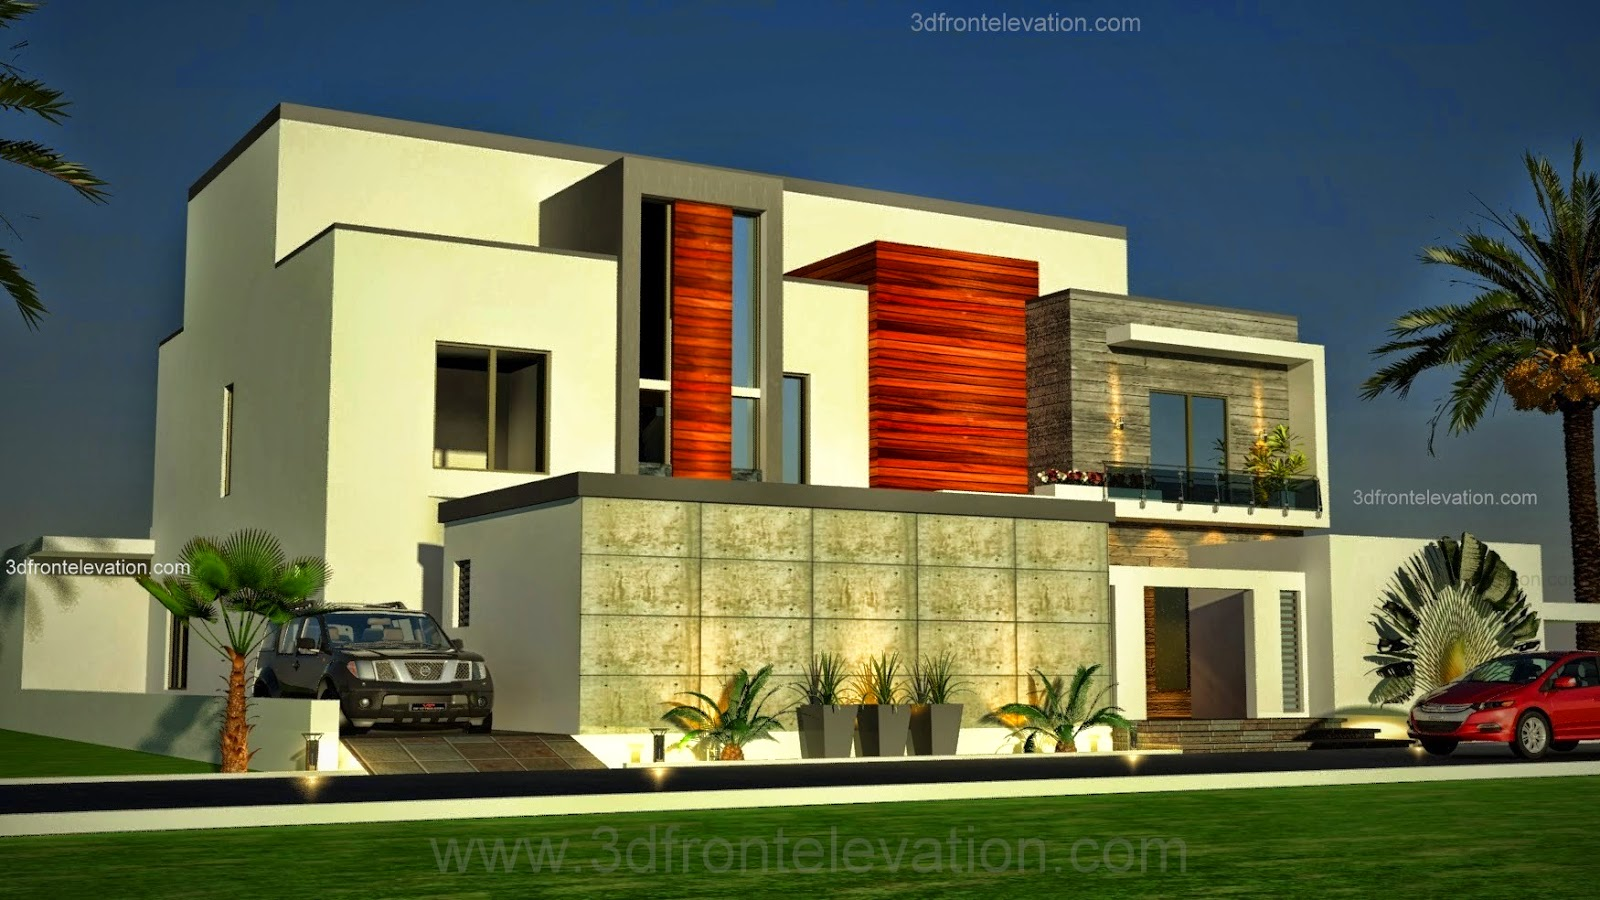 Modern homes elevations and plans in dubai joy studio for Modern villa plans and elevations